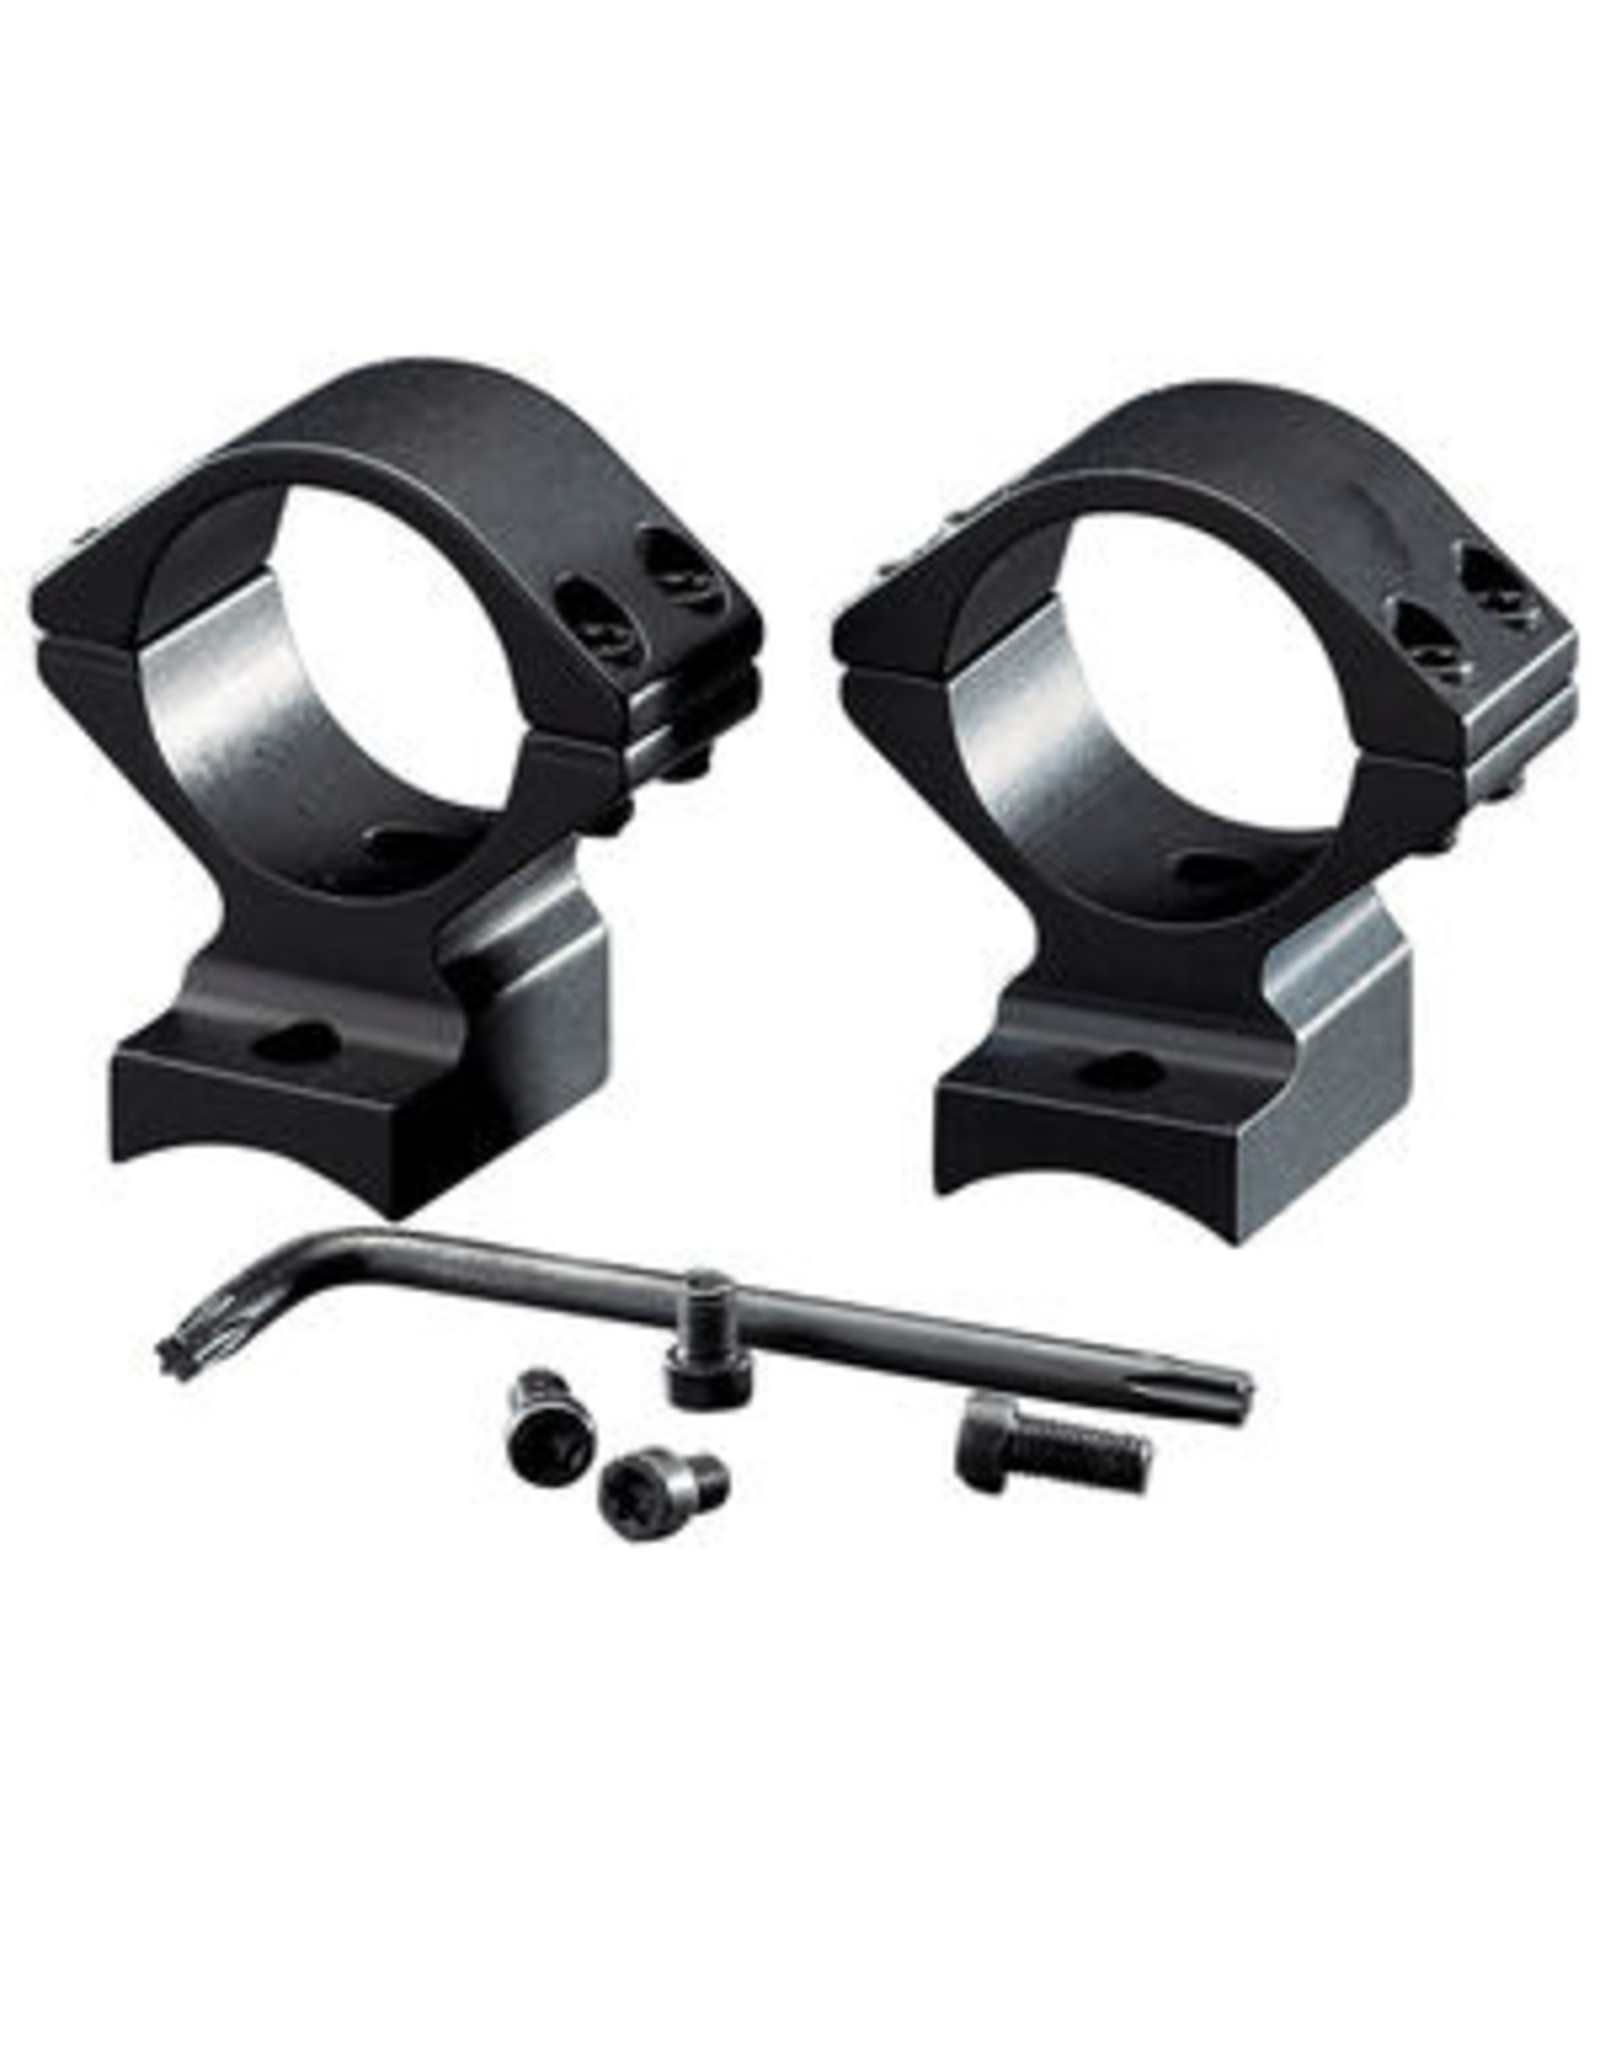 Browning Browning A-Bolt 3 Scope Mounts